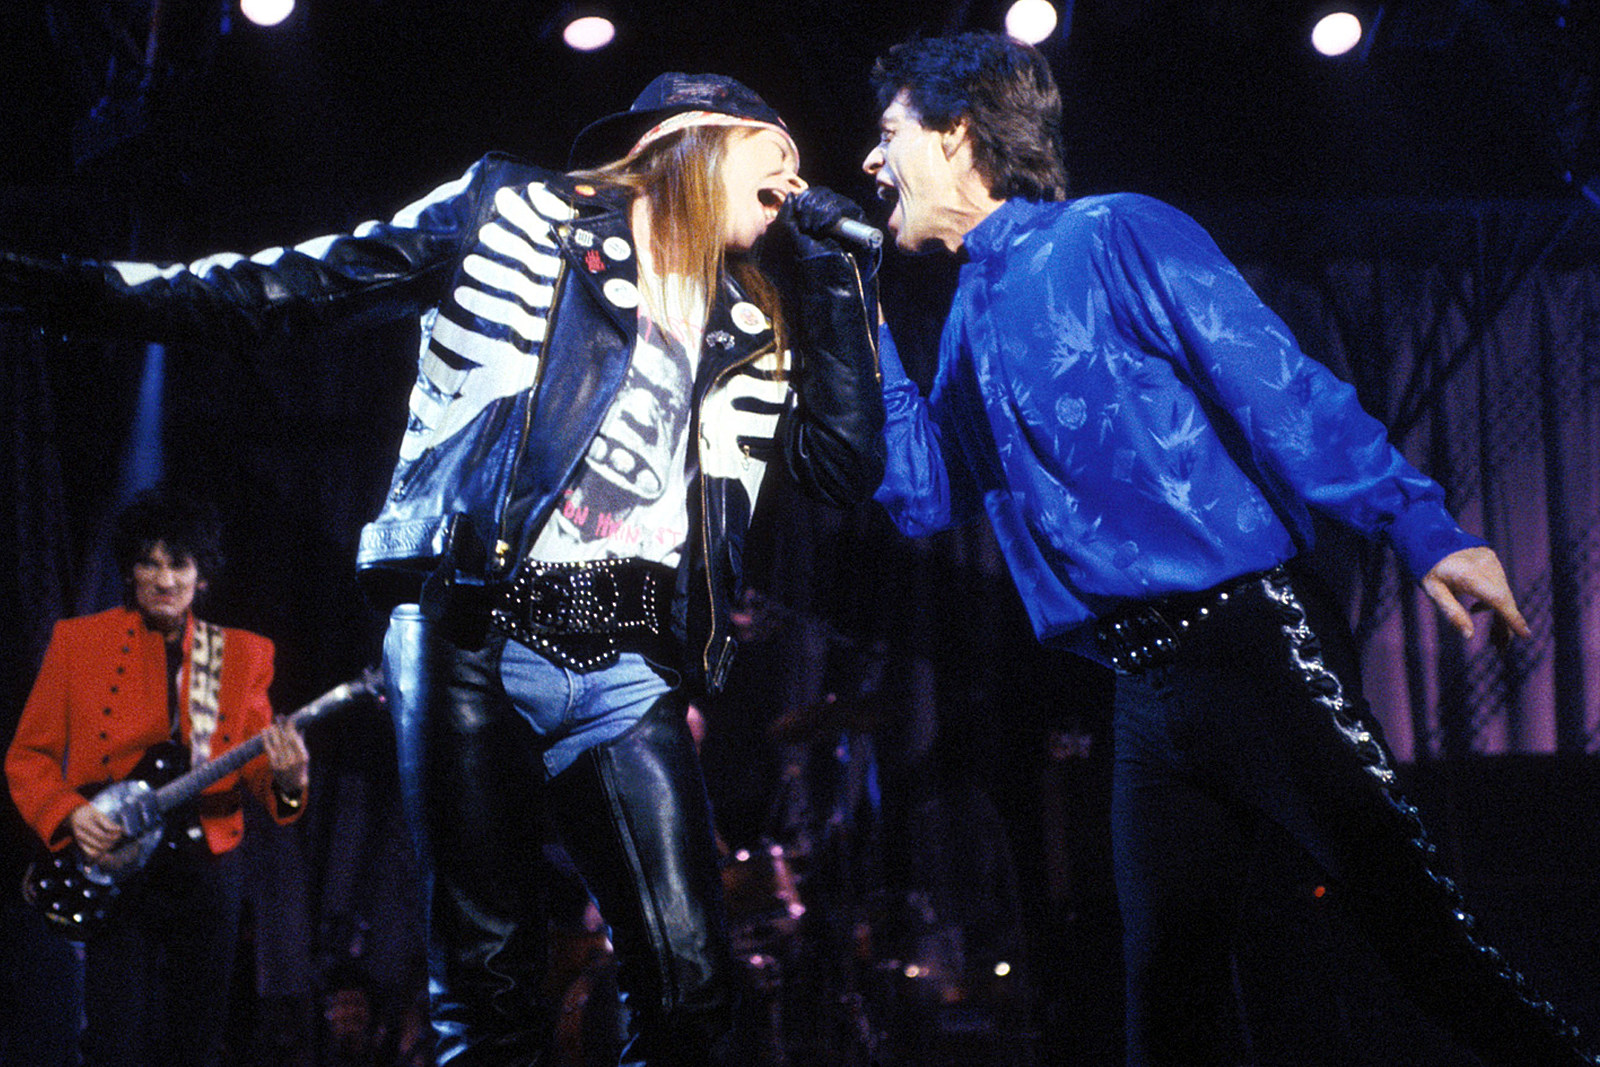 30 Years Ago: Chaos Reigns as Guns N' Roses Open for the Rolling Stones